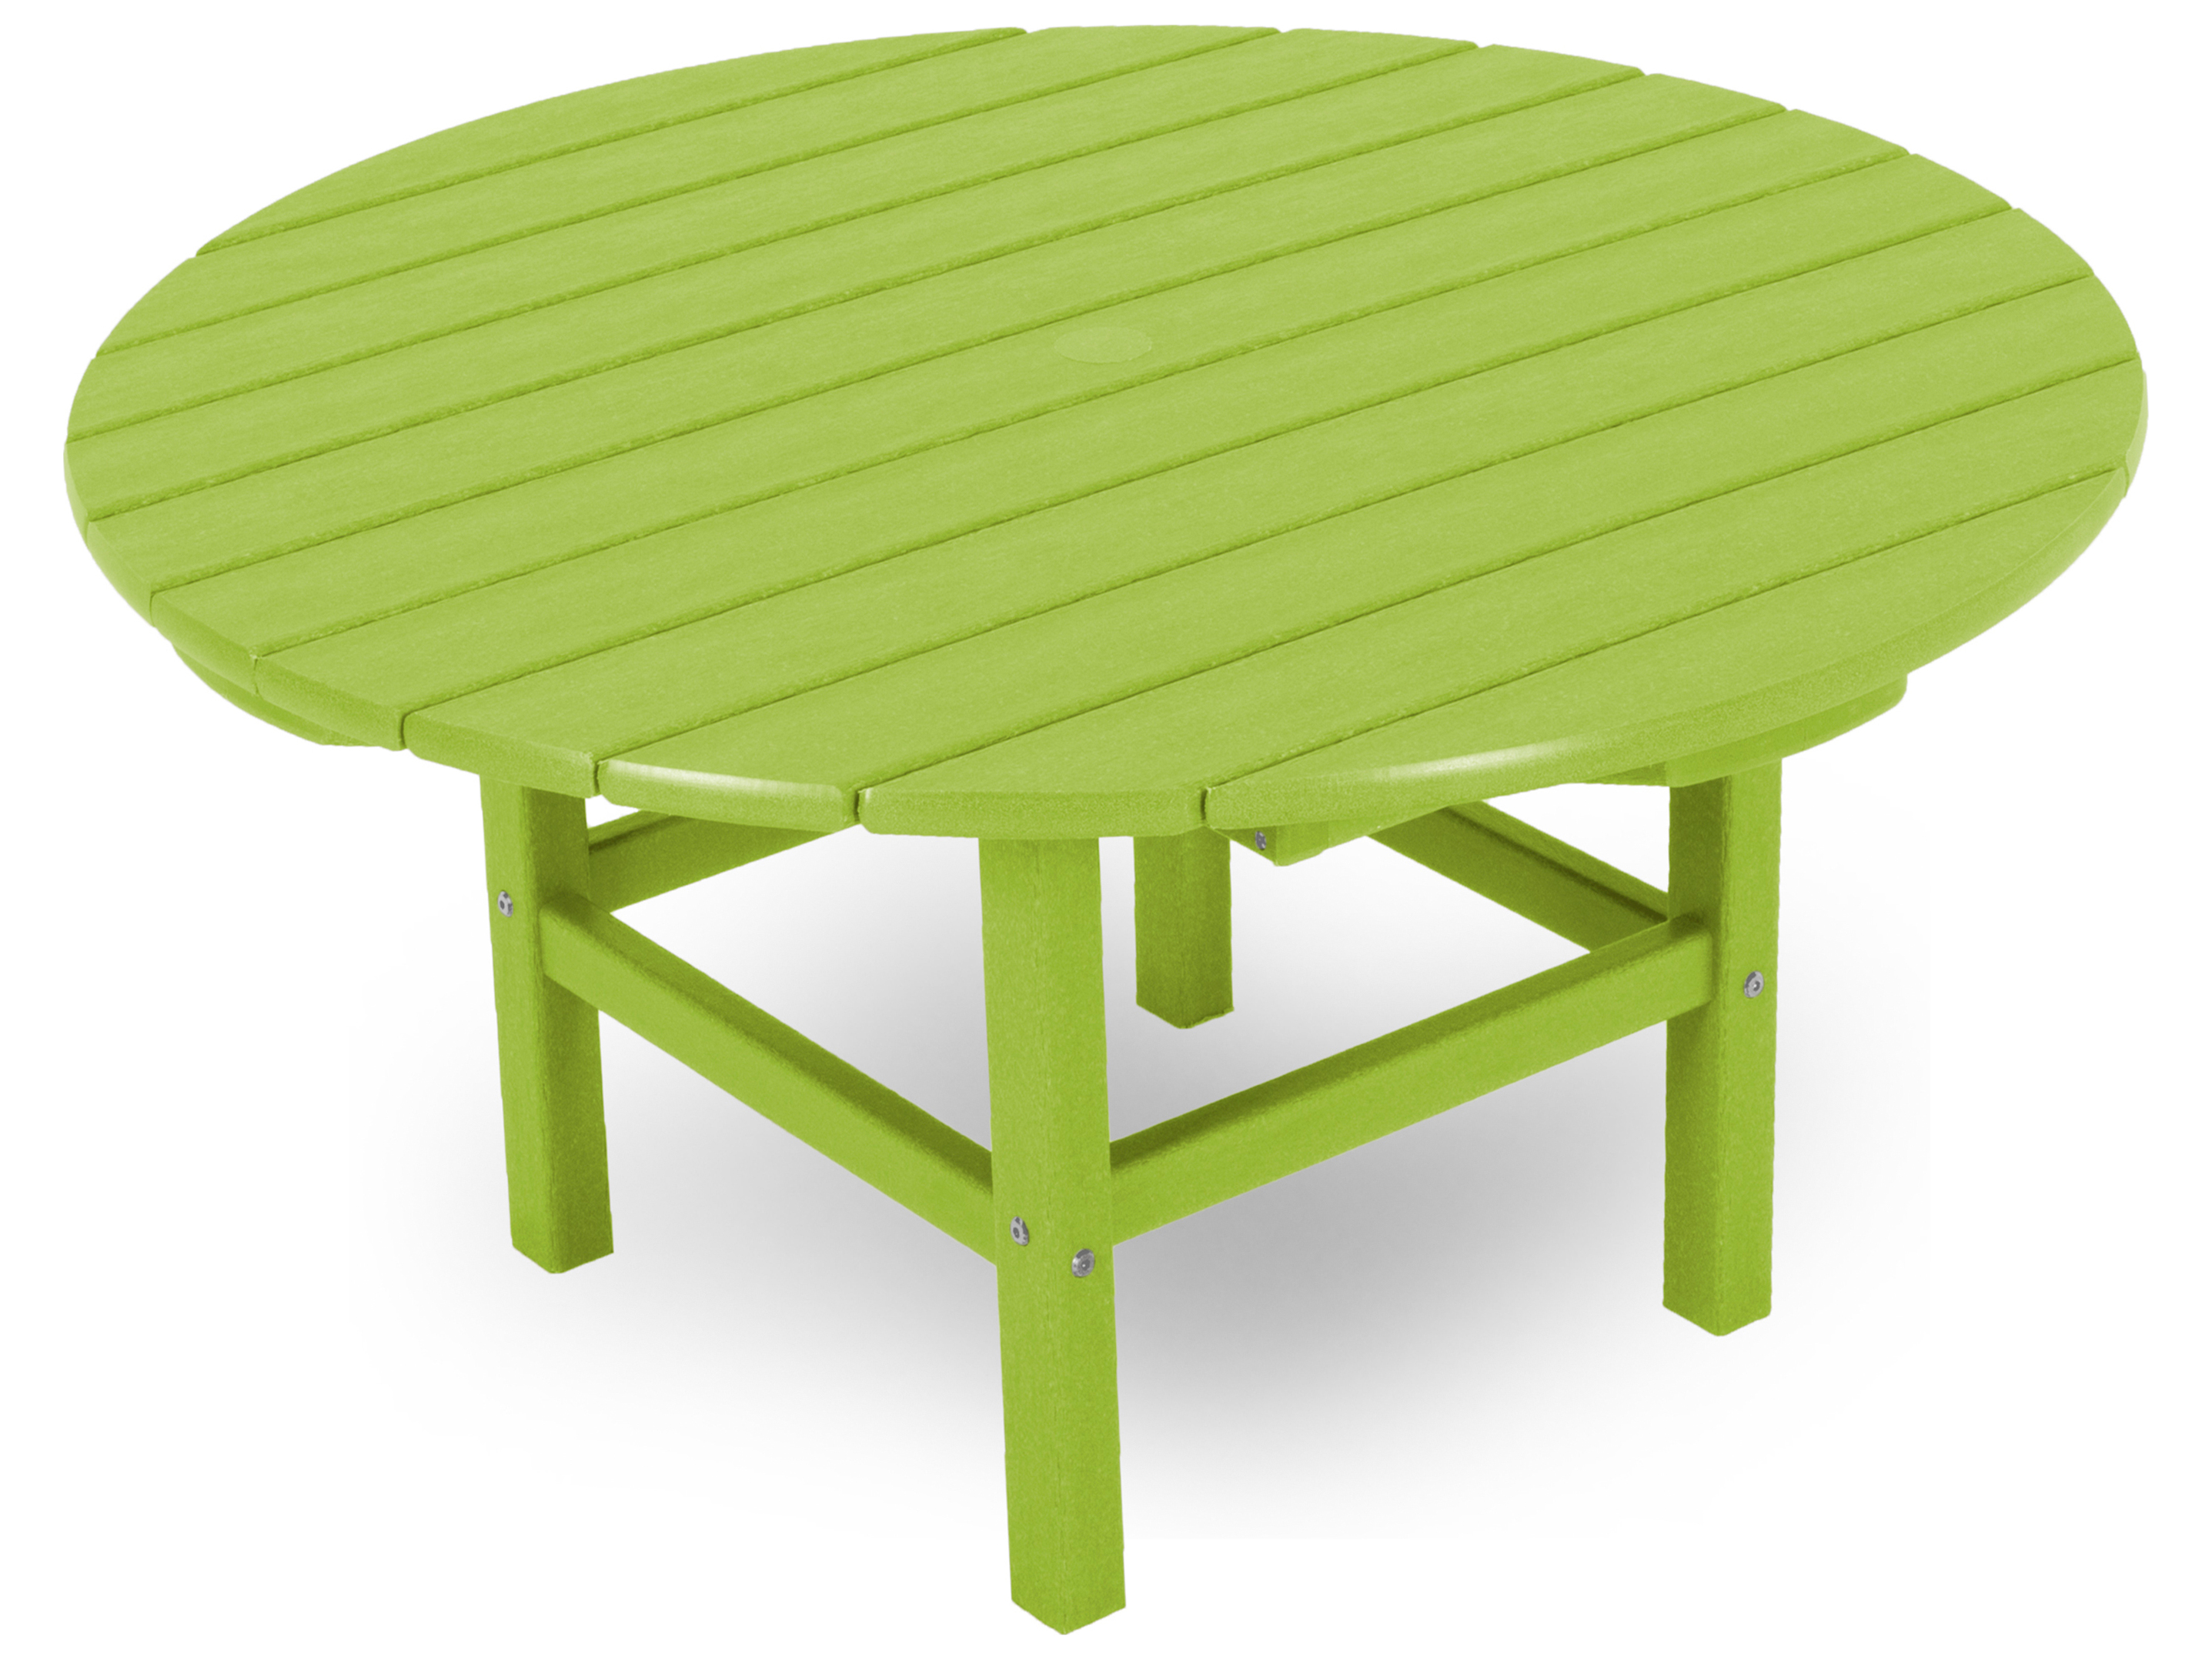 Polywood 174 Traditional Recycled Plastic 38 Round